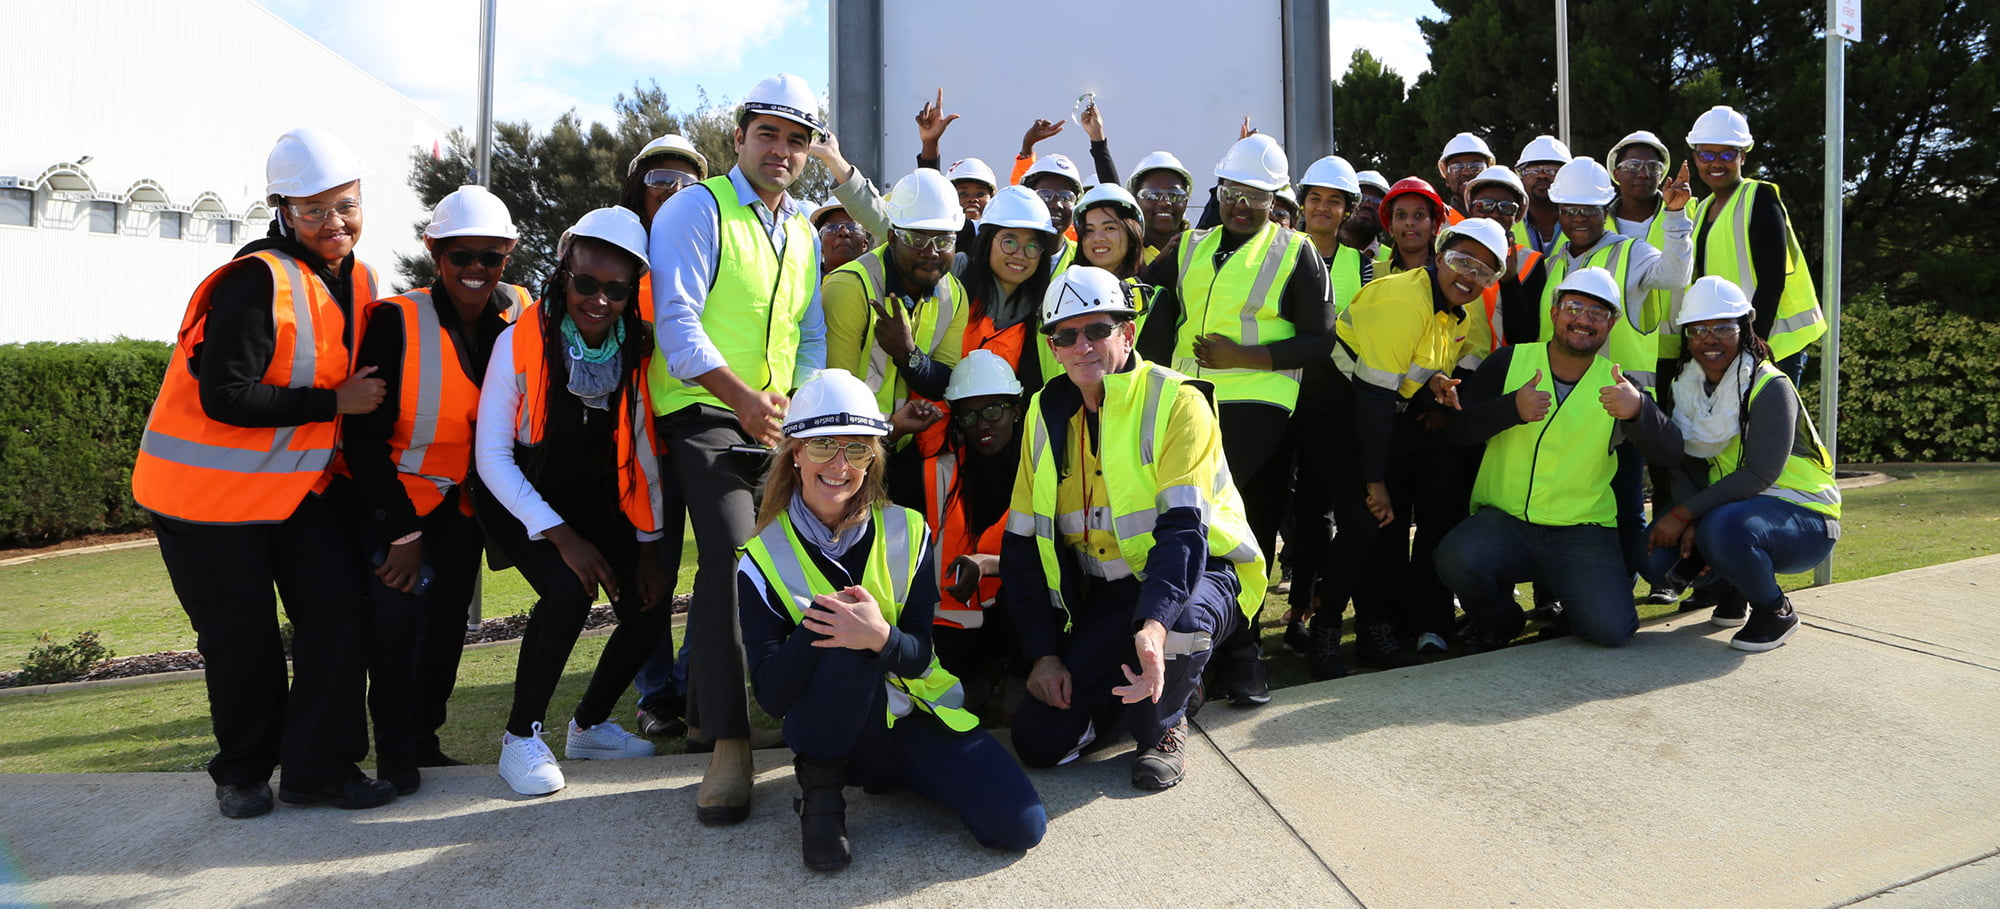 Work Health and Safety Courses Perth Australia